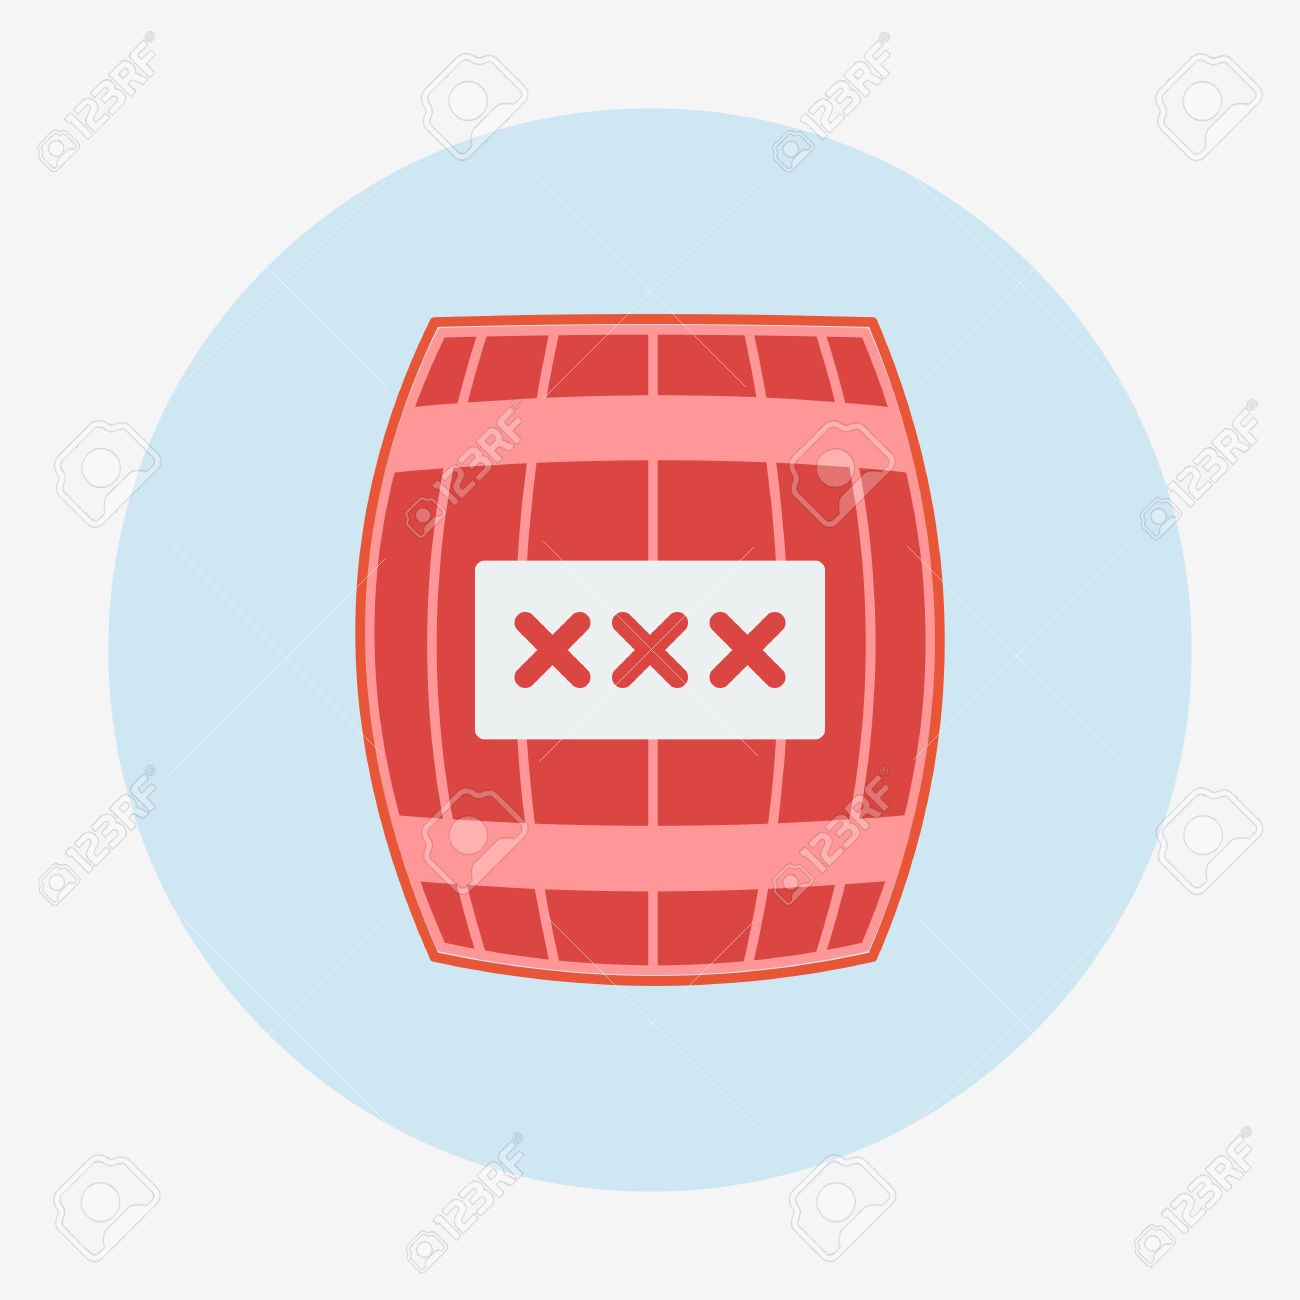 Pirate Icon, Cask Or Barrel. Flat Design Style Modern Vector.